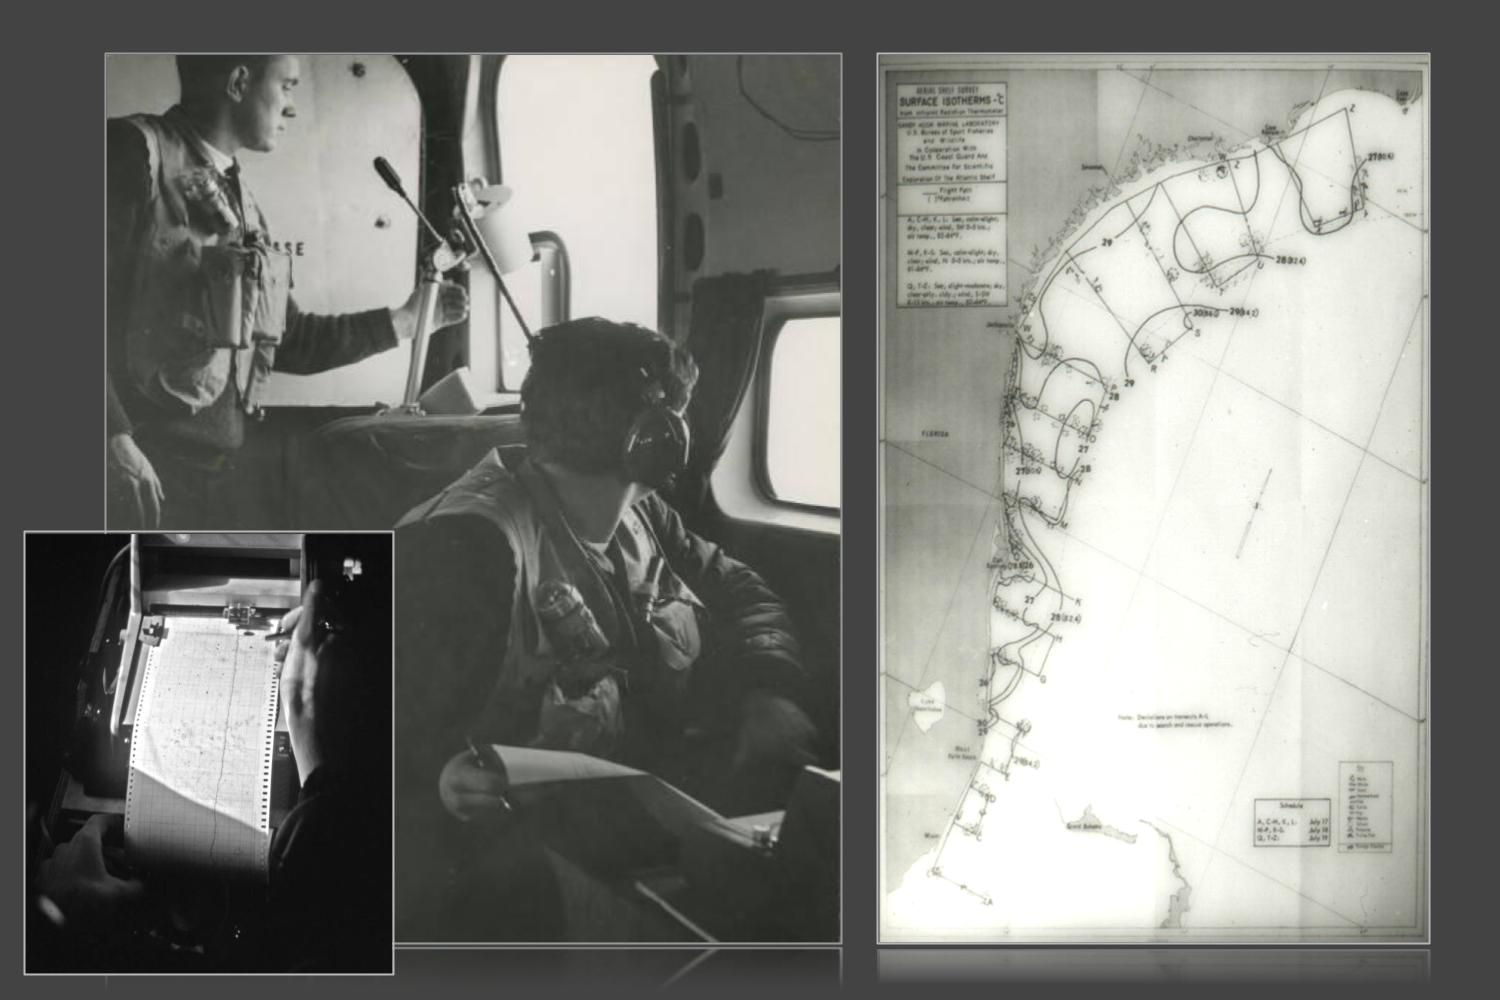 image shows three panels side by side. A small panel on the left shows a person's hand near the paper output of a scientific instrument. The middle panel shows two people operating instruments aboard an aircraft. One person is standing looking down at the instrument and the other is seated, looking out the plane's window. The panel to the right is a hand drawn chart of isotherms.